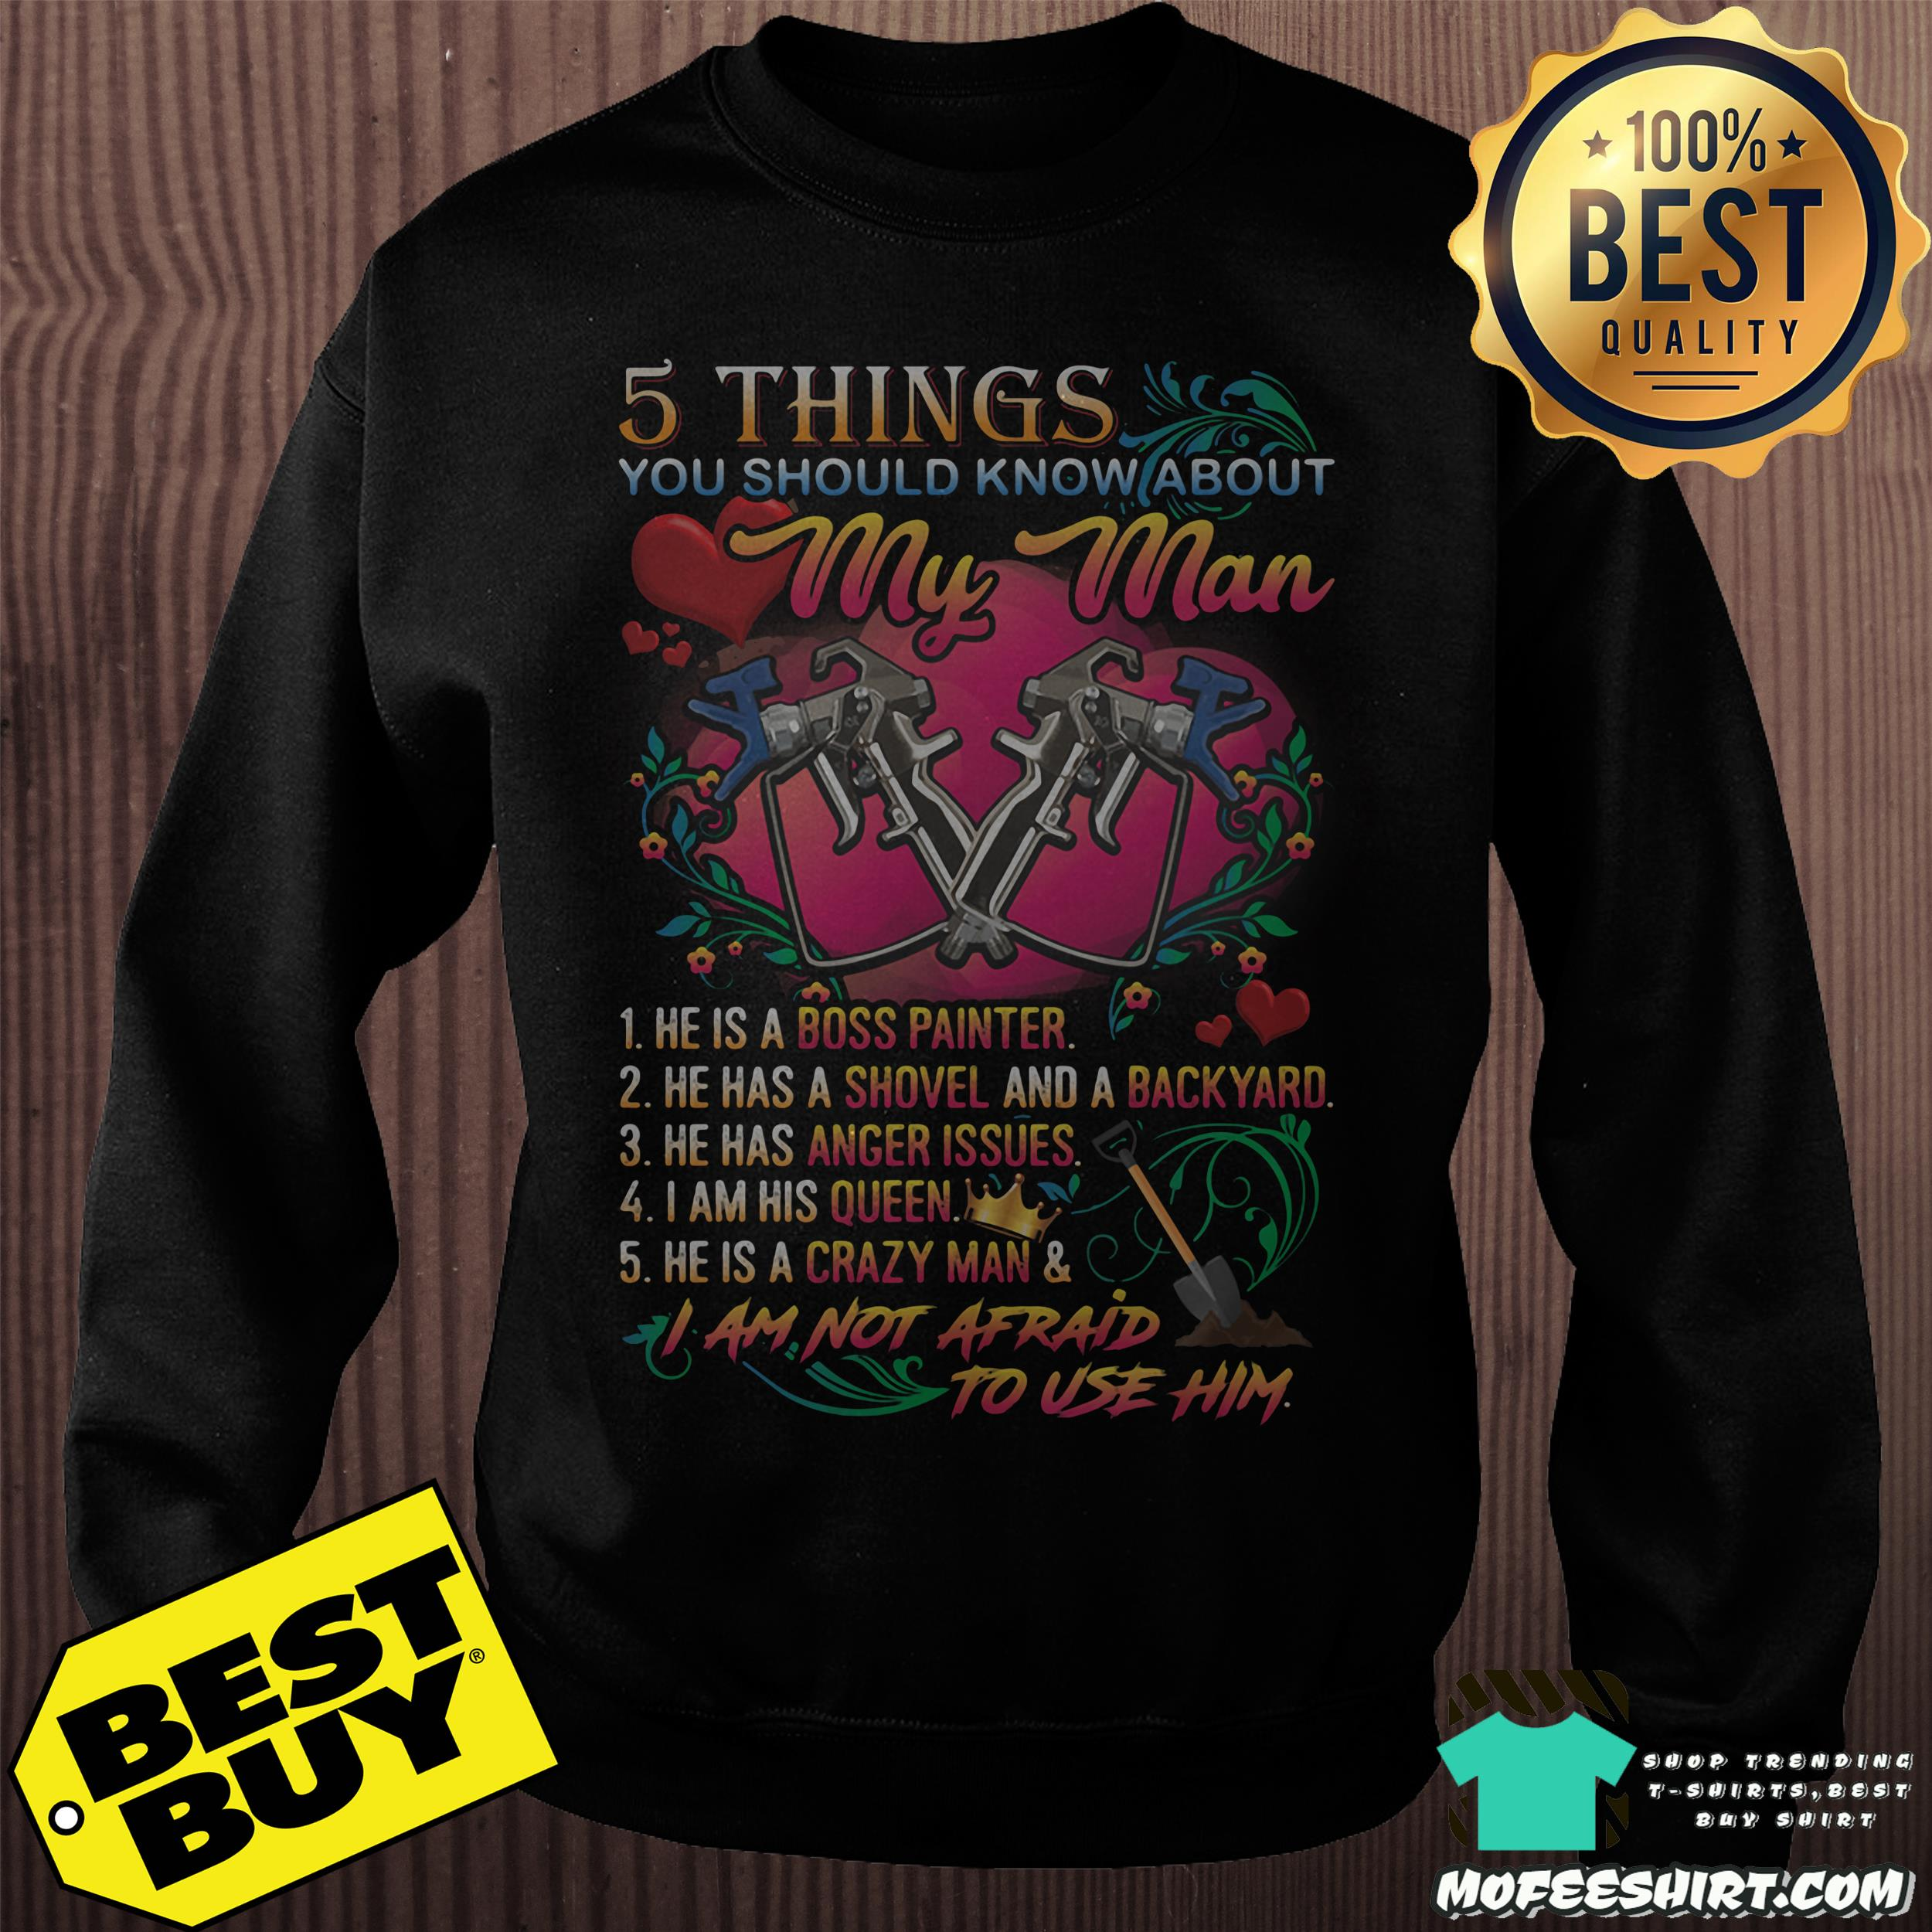 5 things you should know about my man he is a boss painter sweatshirt - 5 things you should know about my man he is a boss painter shirt